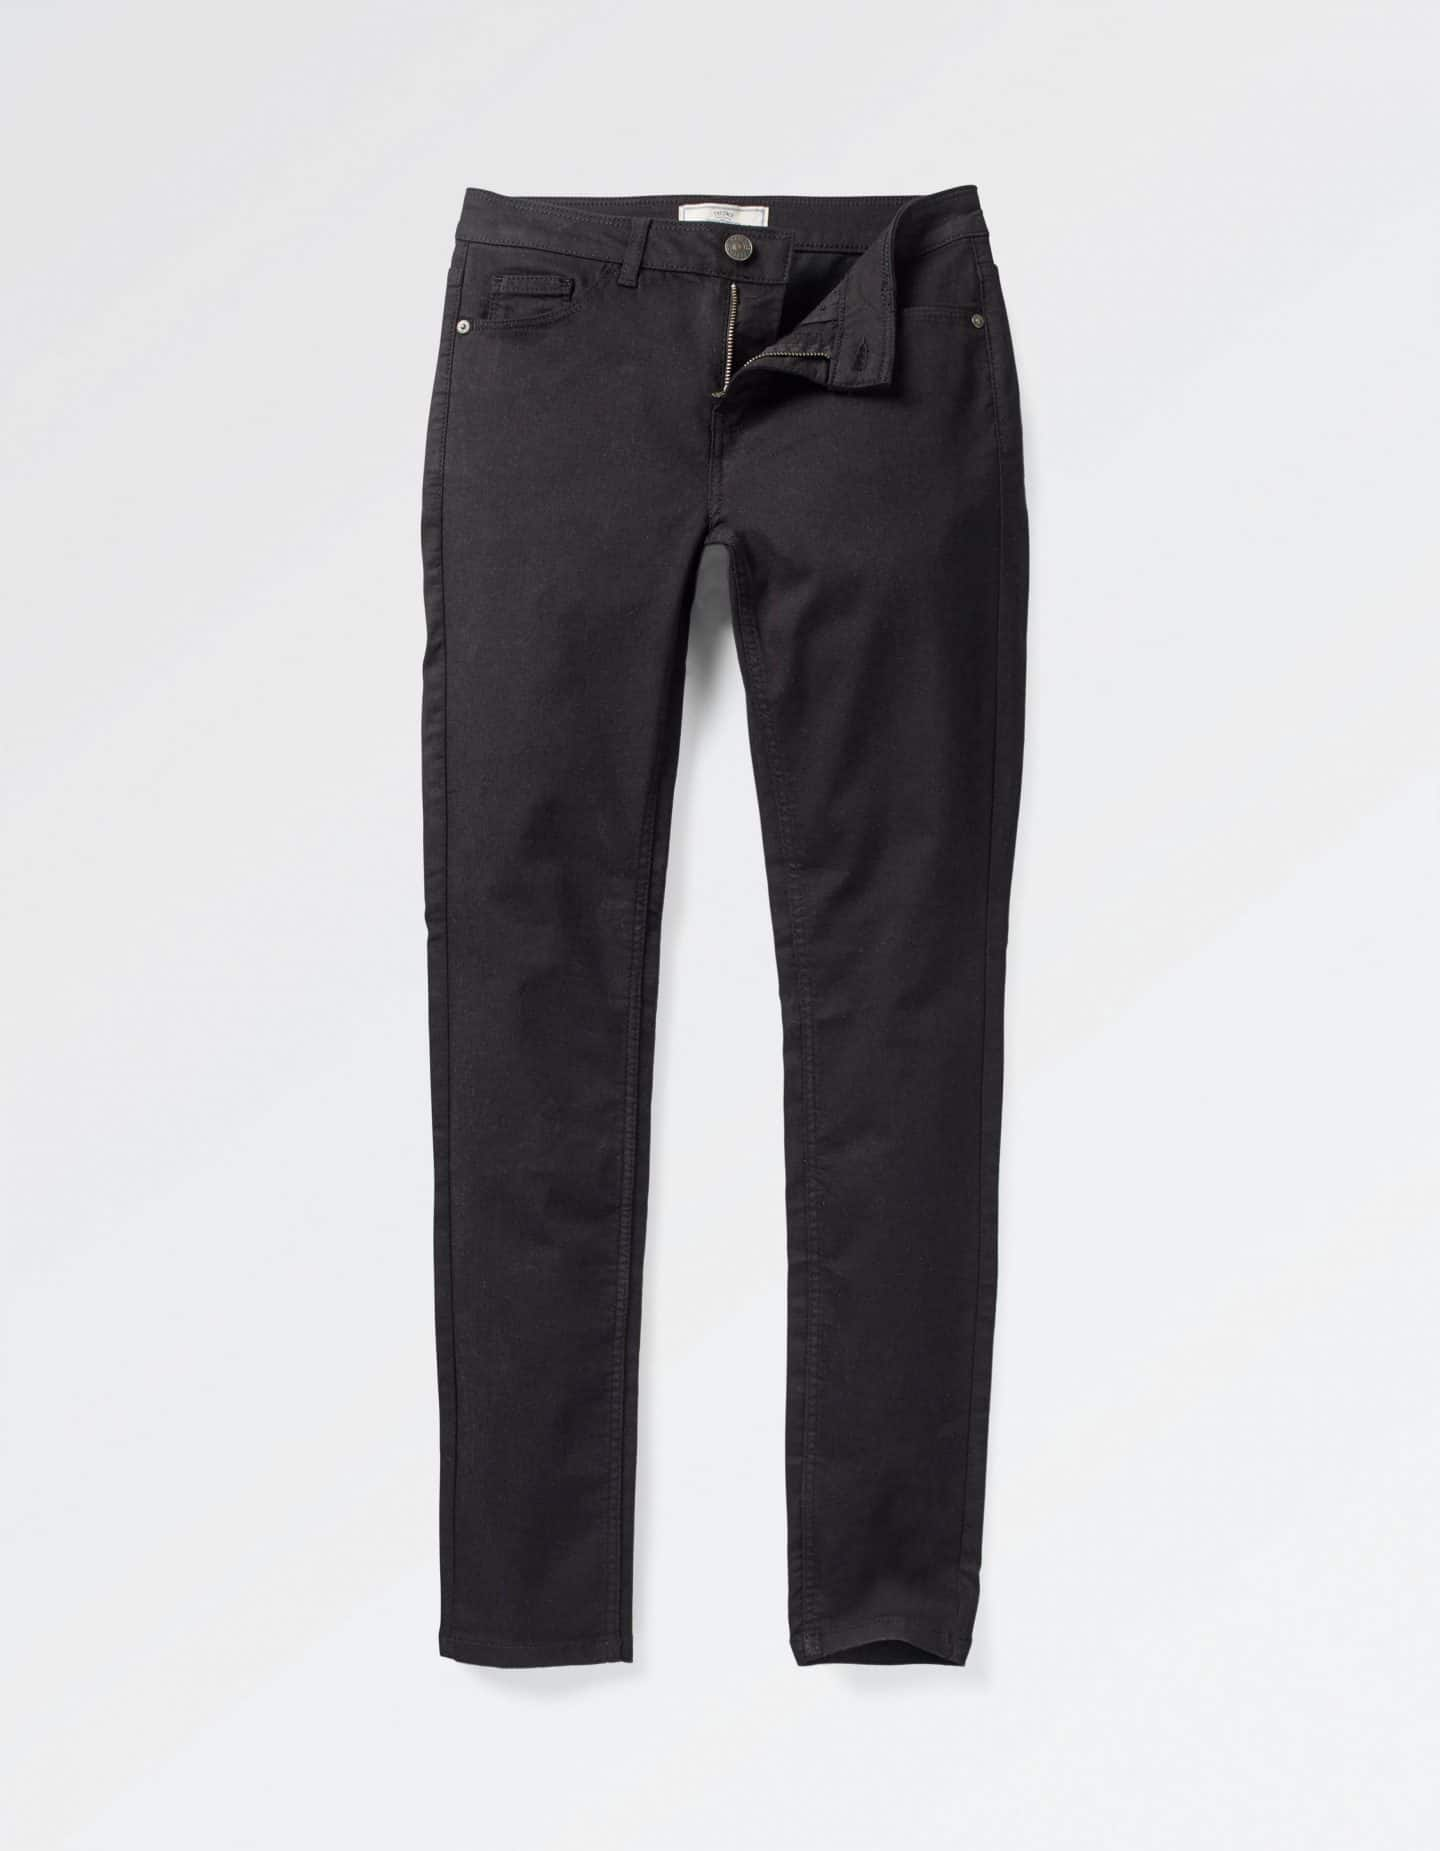 Fat Face Black Skinny Jeans